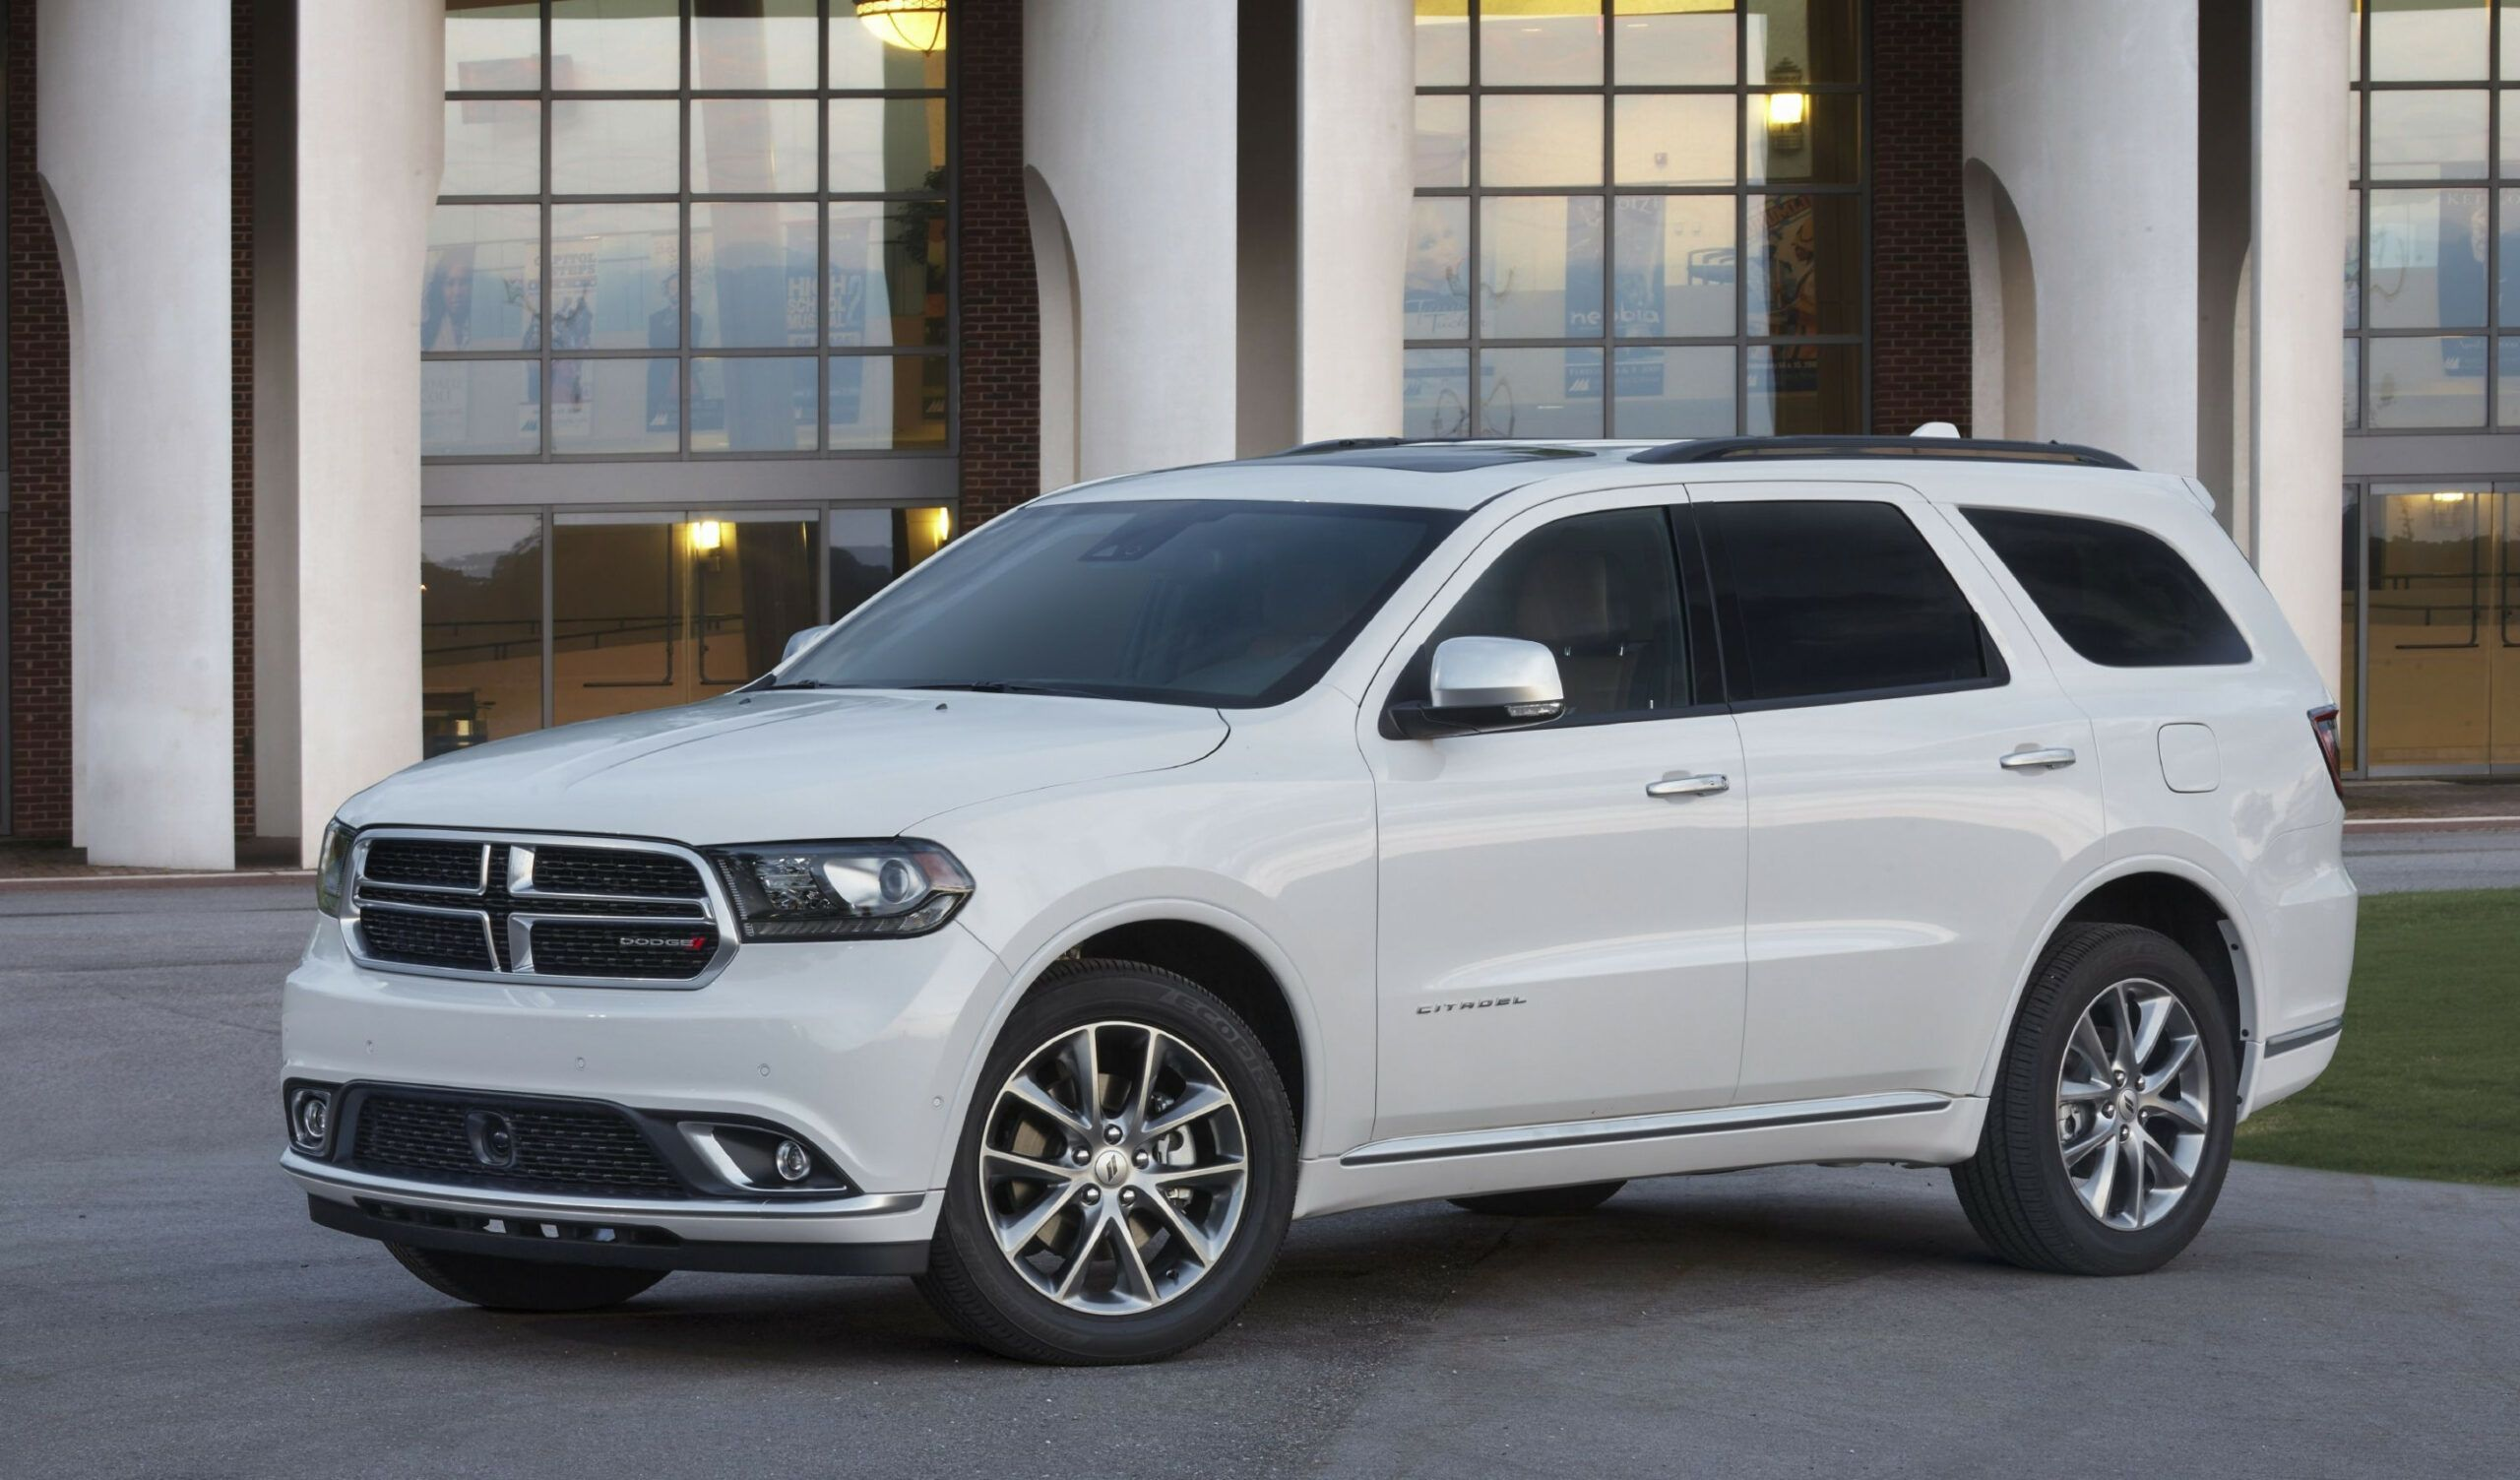 7 Picture 2020 Dodge Durango Citadel In 2020 Dodge Durango Dodge Suv Dodge